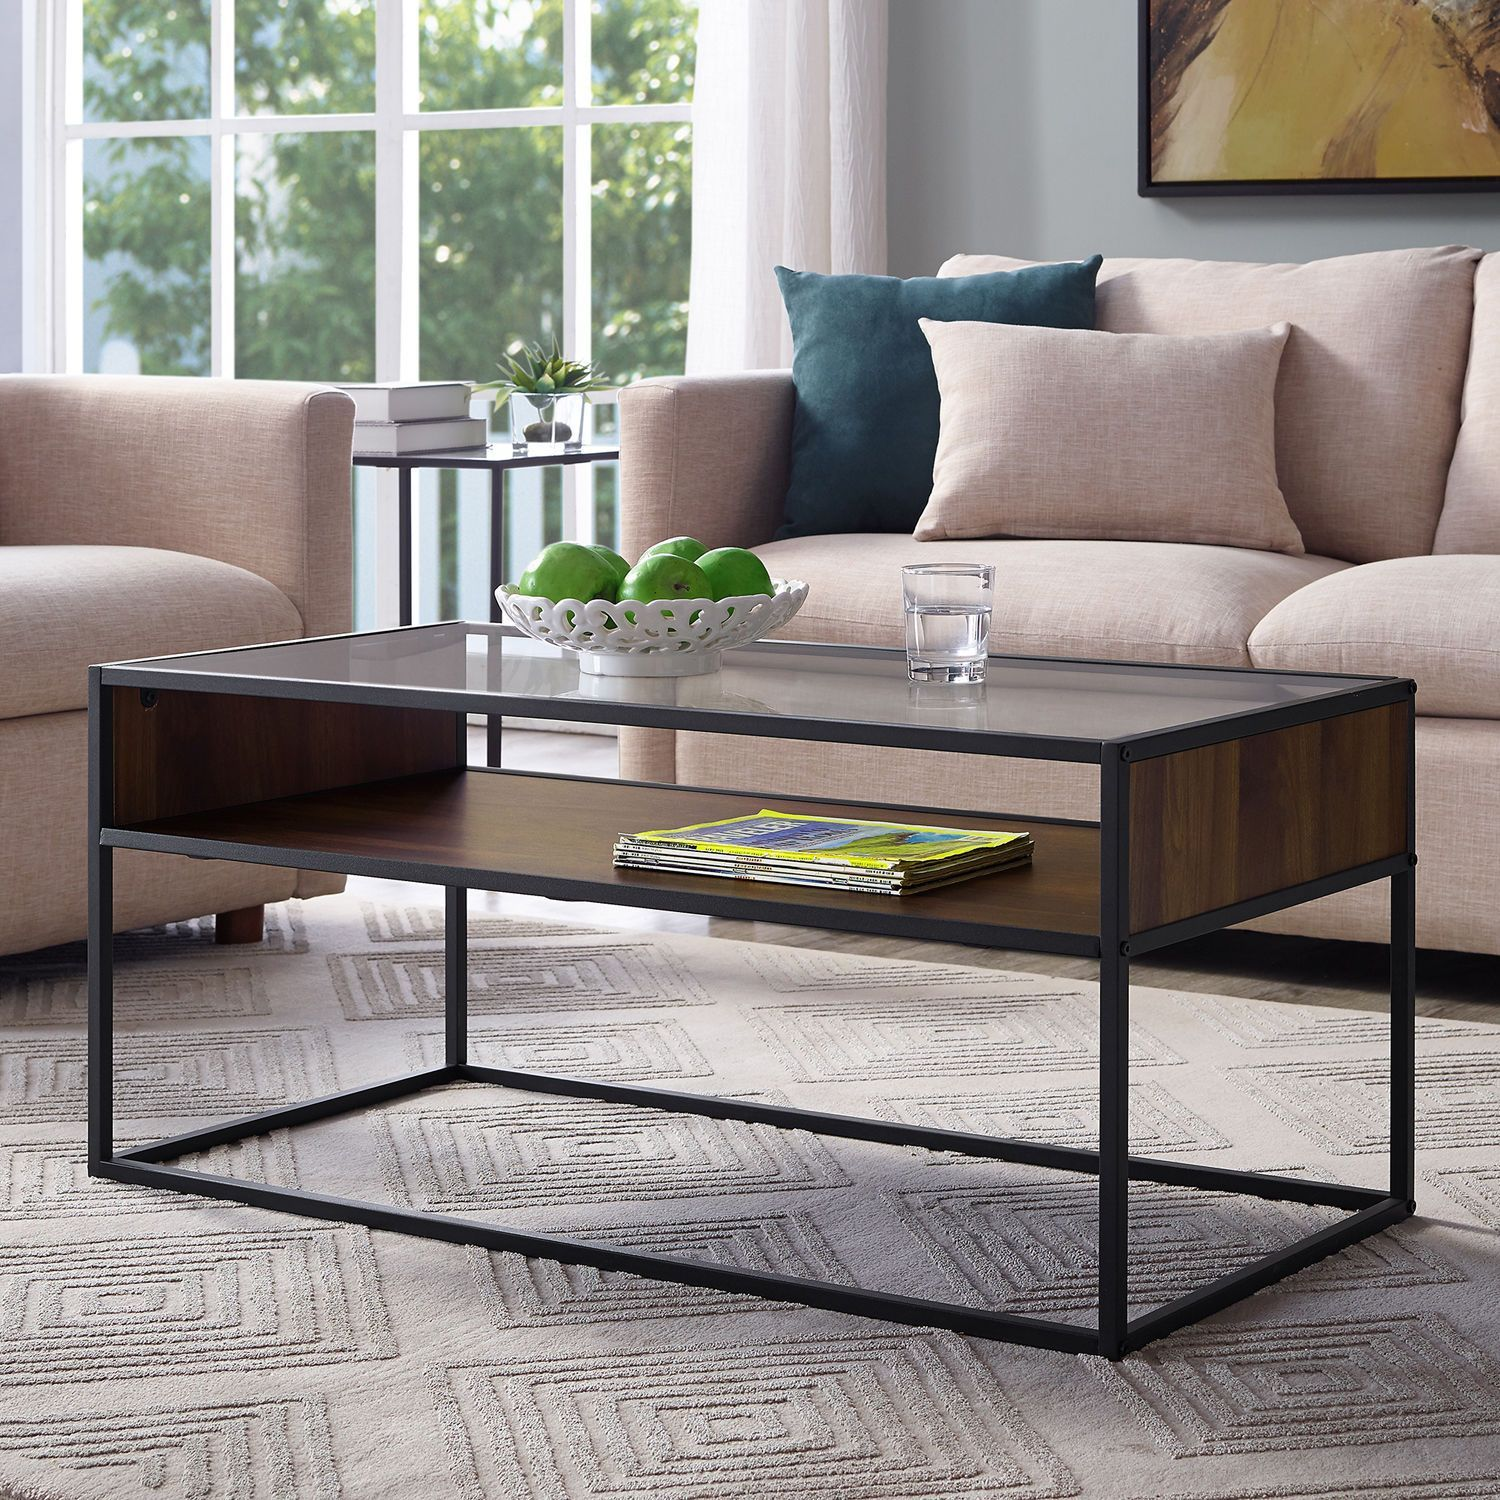 Null Coffee Table Coffee Table Wood Glass Coffee Table